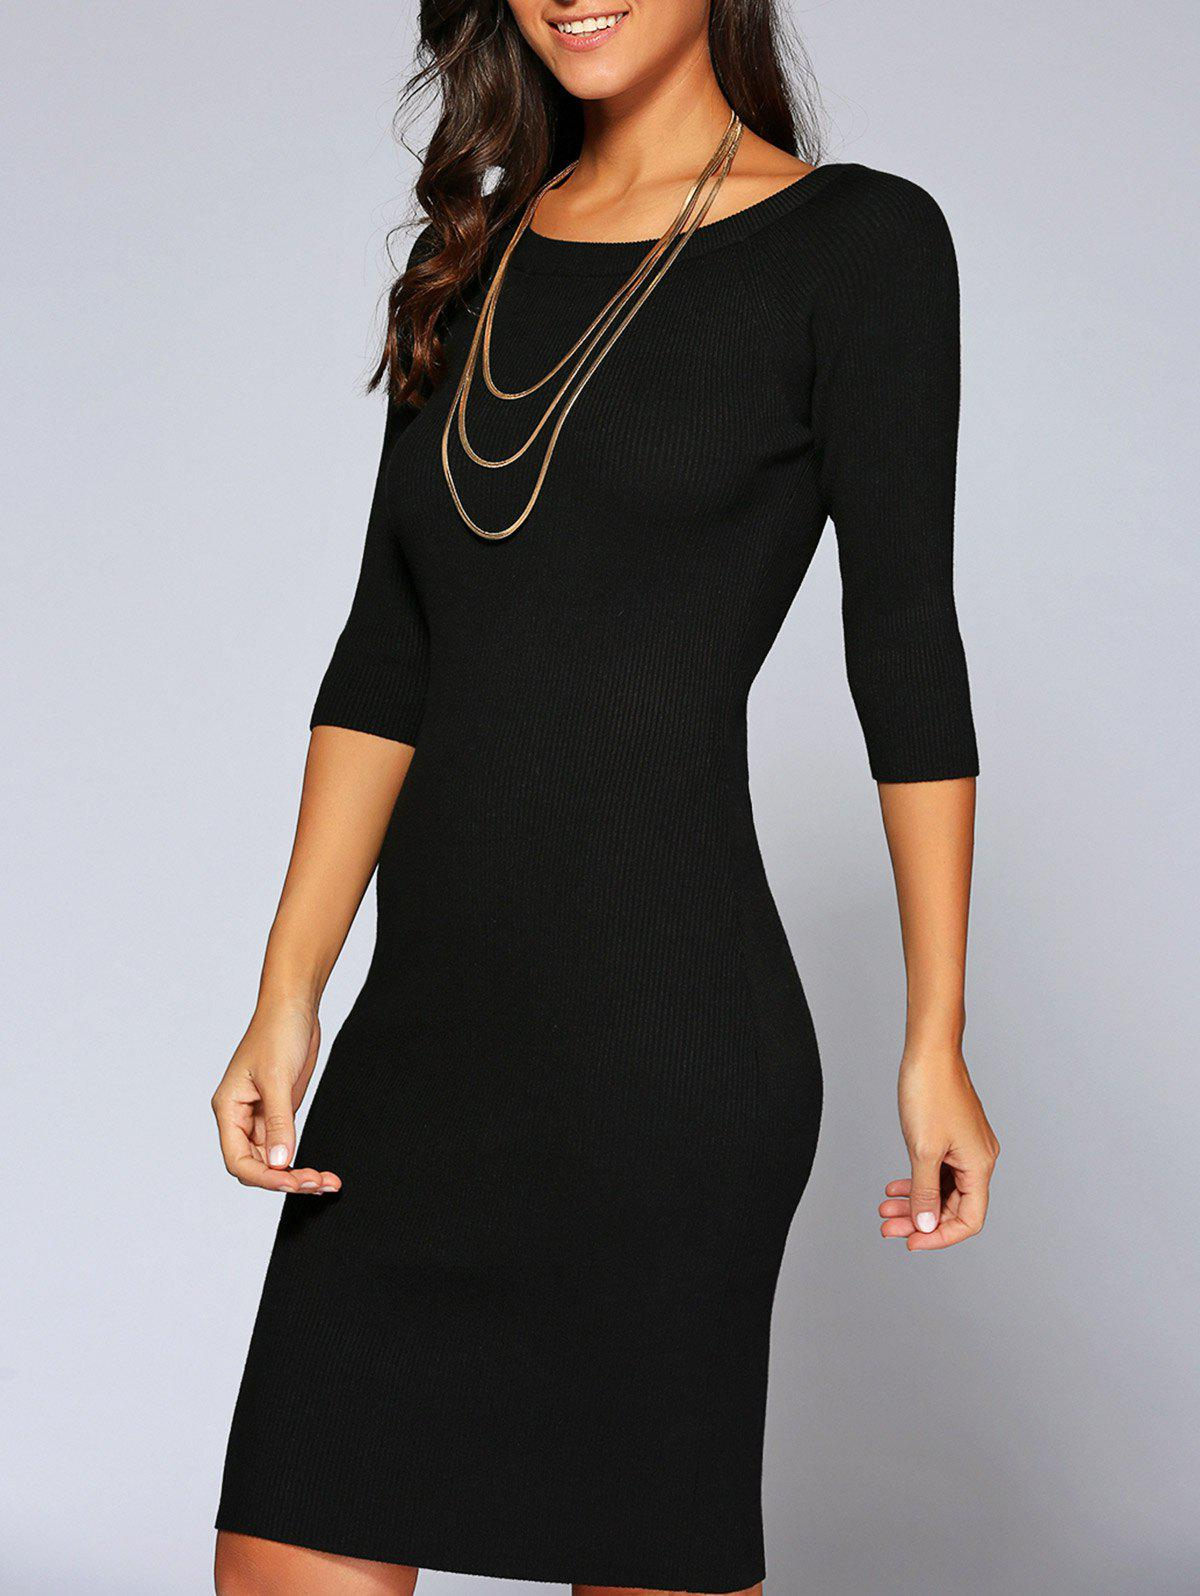 Concise 3/4 Sleeve Close-Fitting Knit Dress - BLACK ONE SIZE